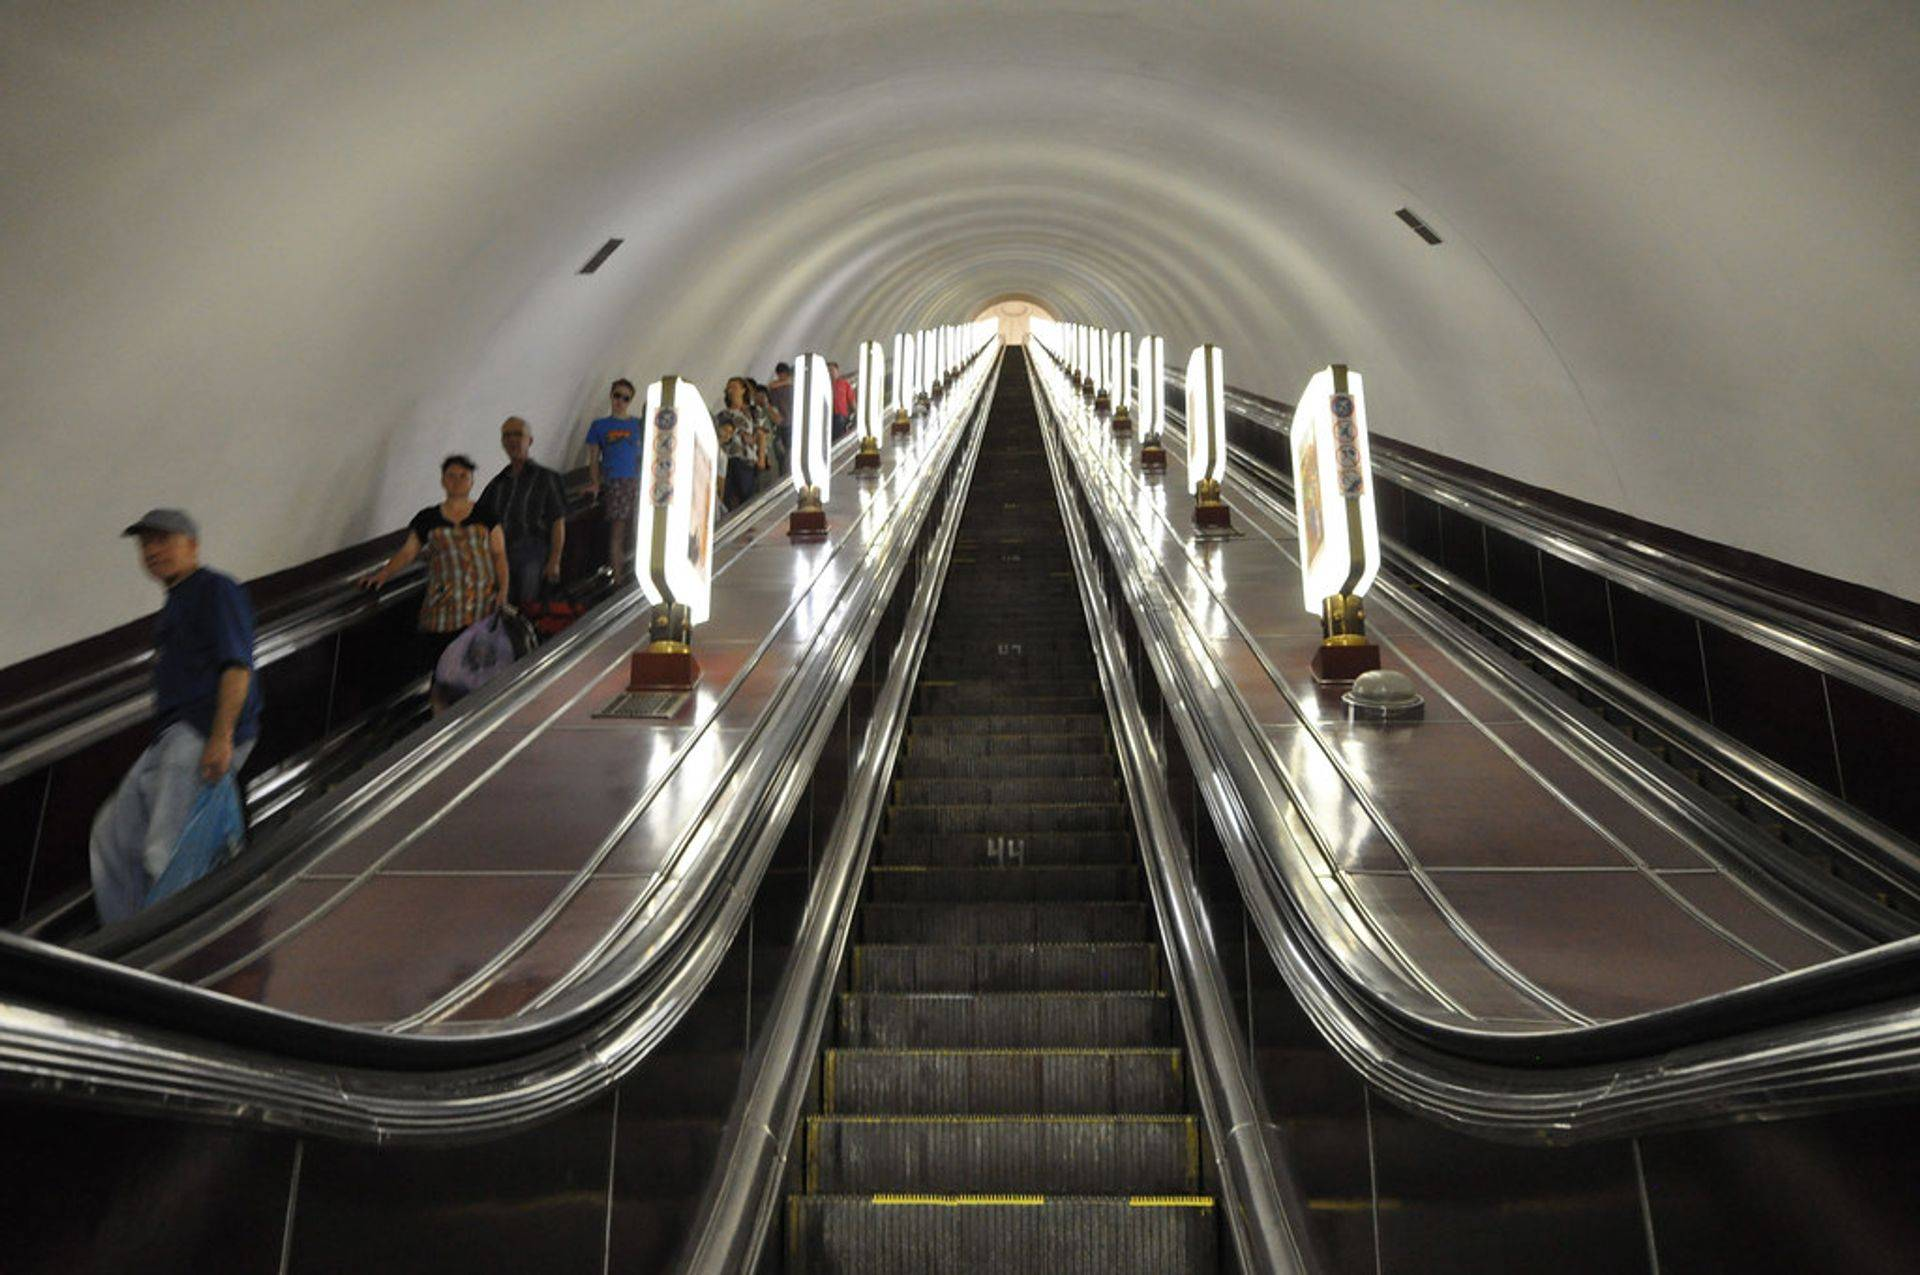 escaping the dark using the escalator